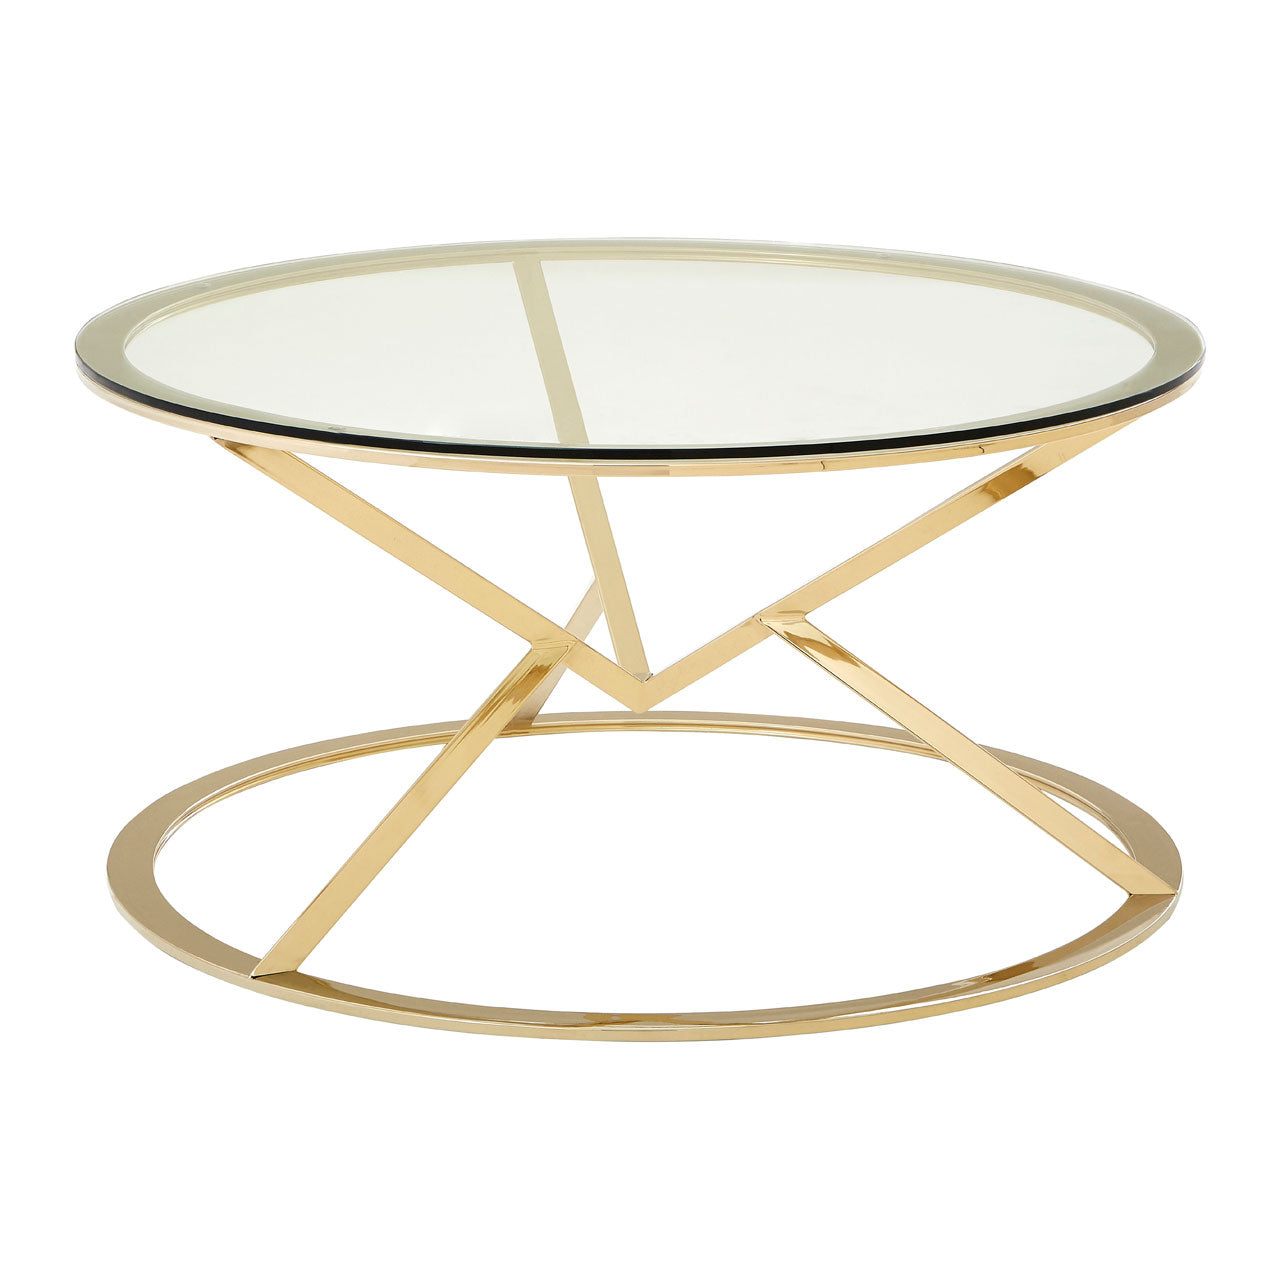 Gold Metal Round Coffee Table.Allure Round Coffee Table Champagne Gold